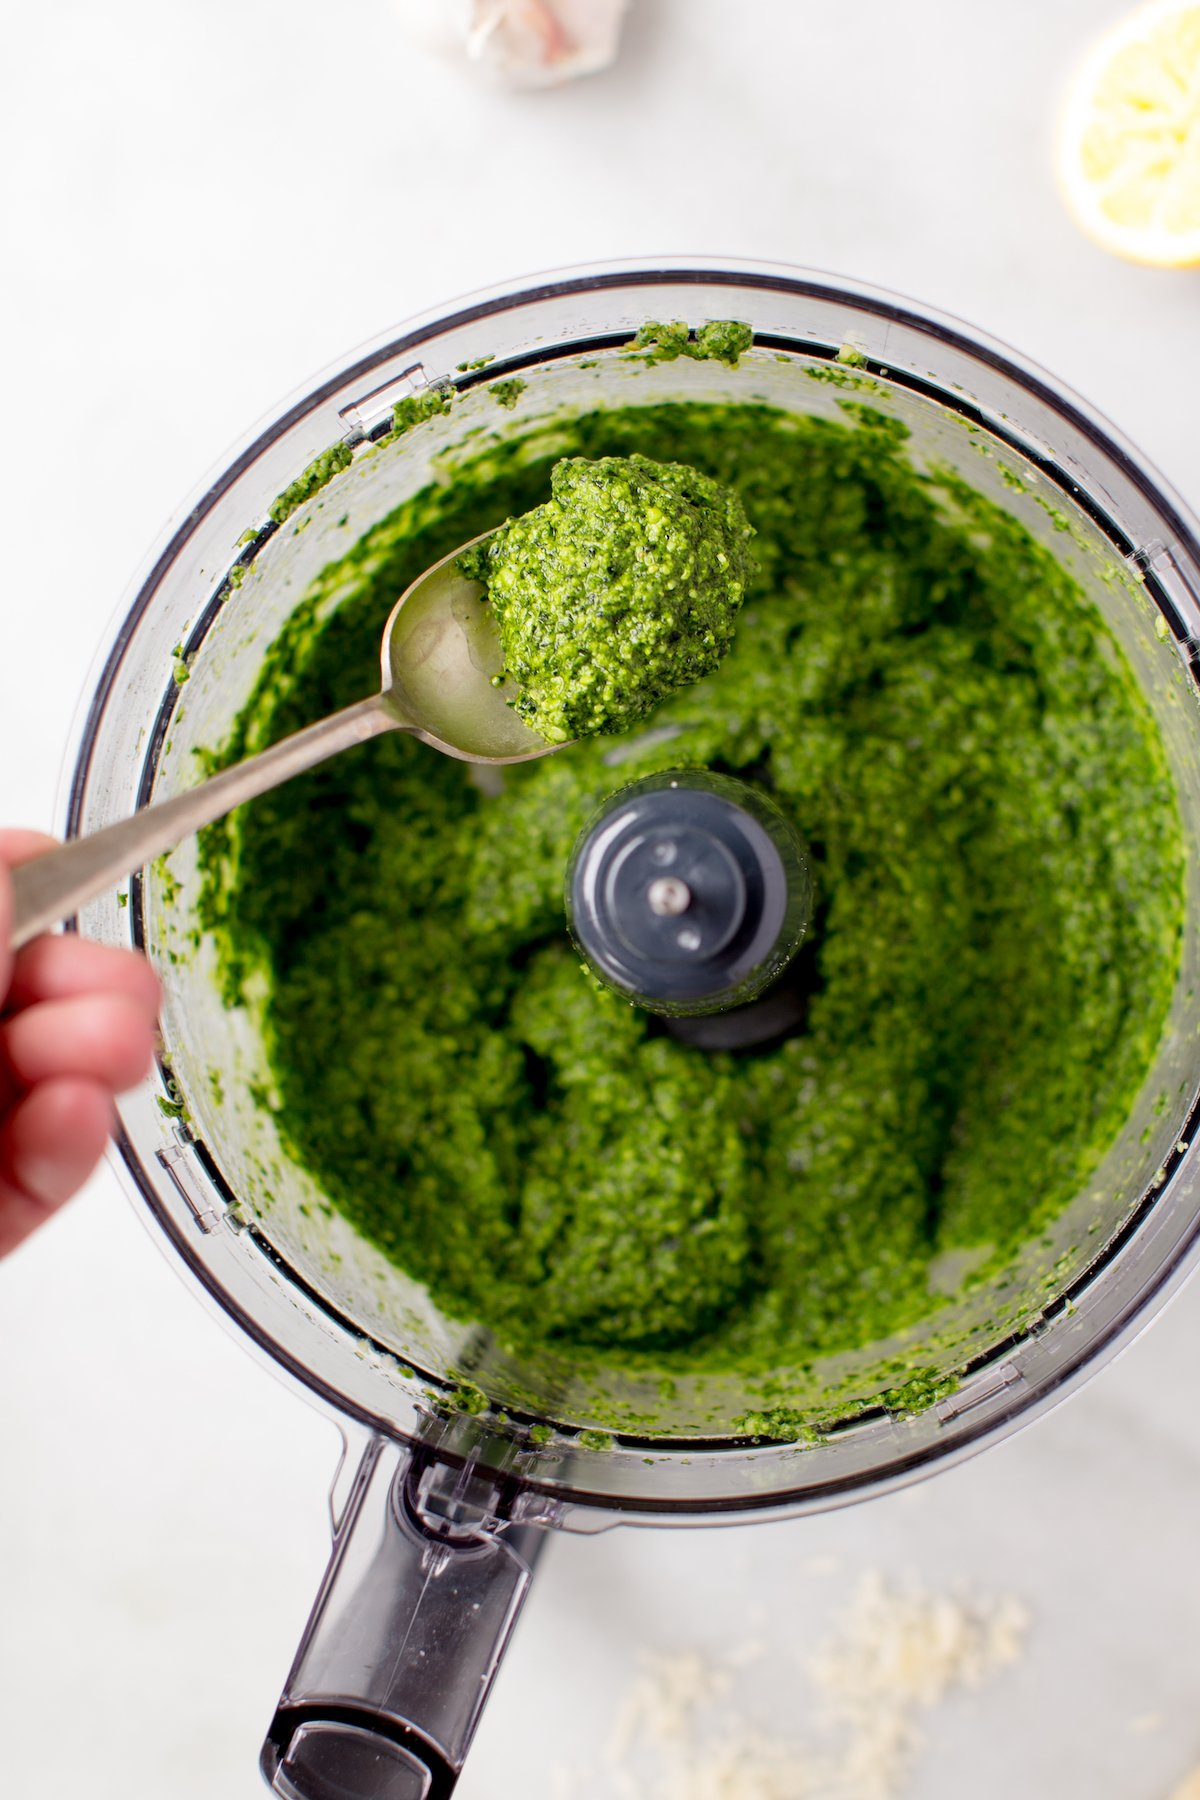 kale pesto in food processor with spoon